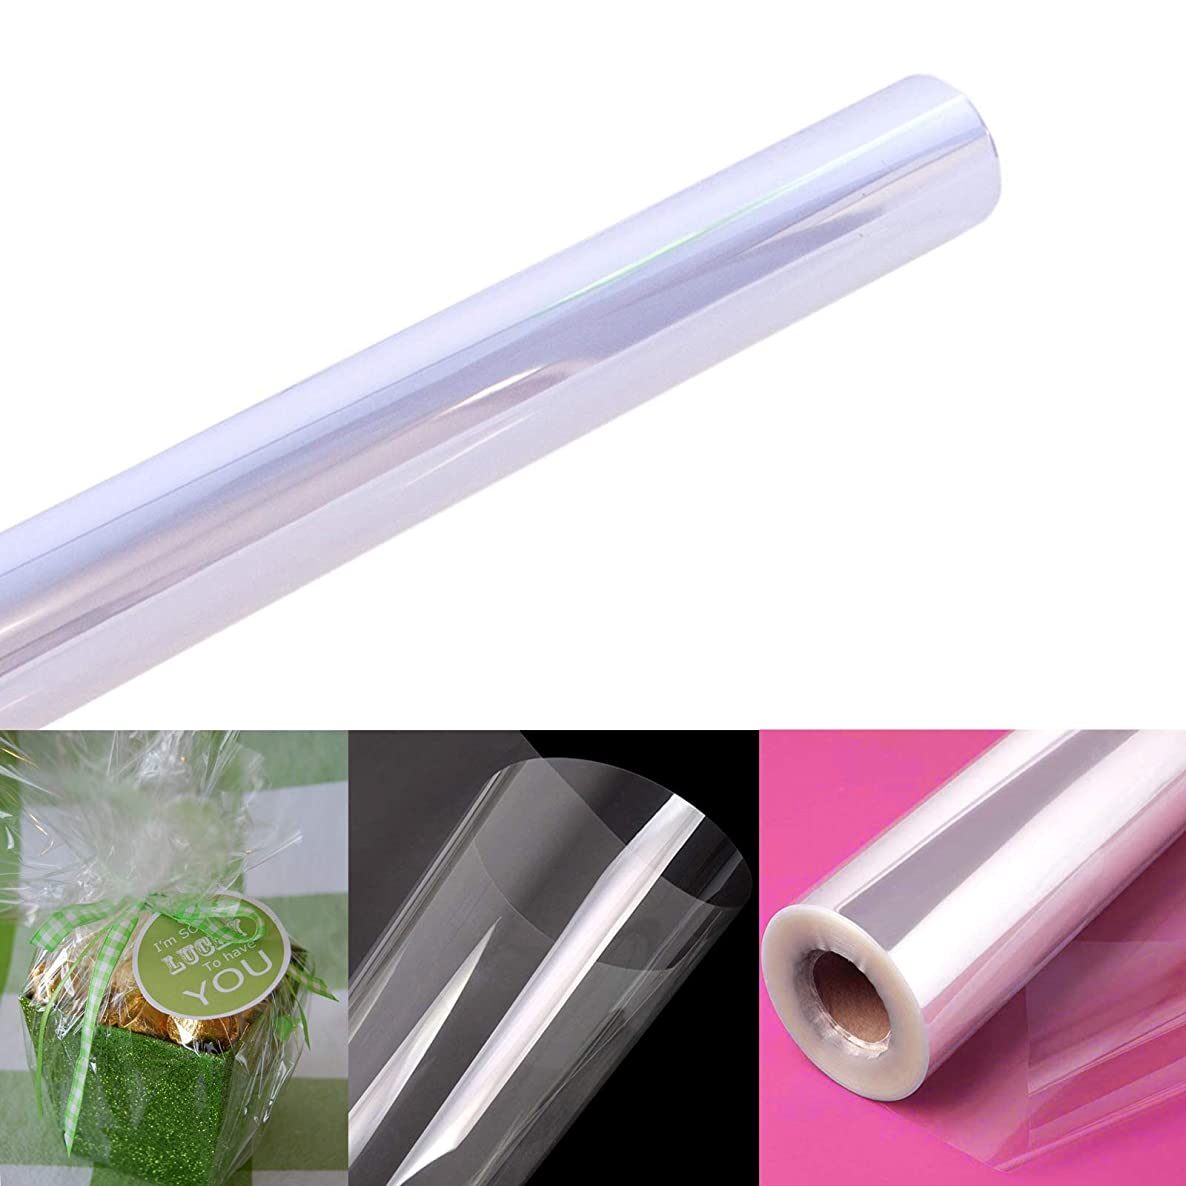 """Clear Cellophane Wrap Roll   100' Ft. Long X 16"""" in. Wide   2.3 Mil Thick Crystal Clear   Gifts, Baskets, Arts & Crafts, Treats, Wrapping   Meets FDA Specifications   by Anapoliz"""